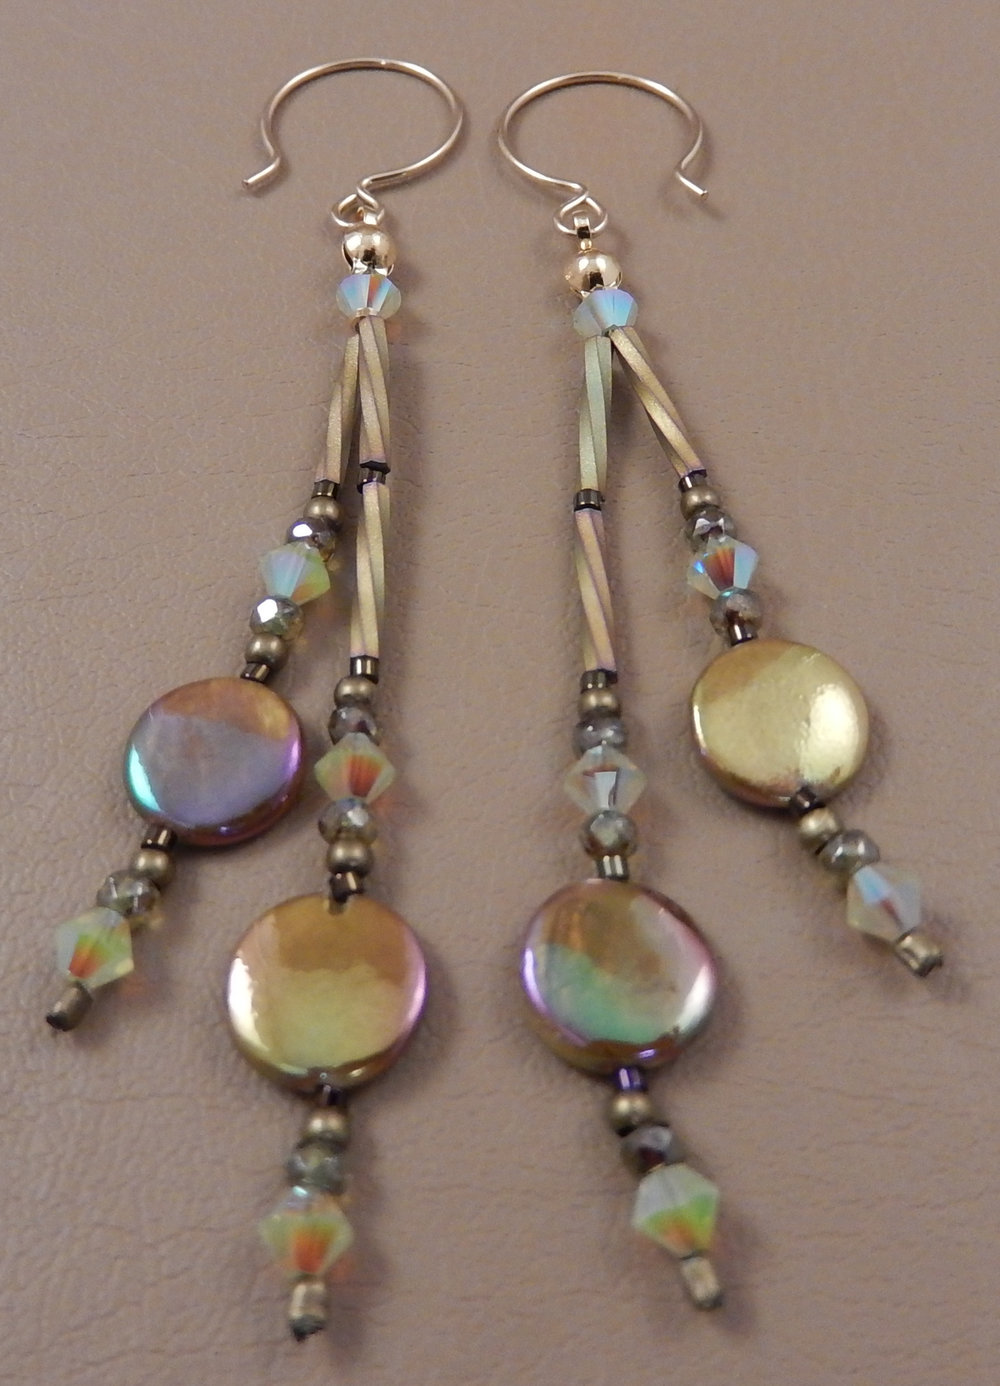 Gold mother of pearl coin bead earrings featuring swarovski chrysolite opal crystals.